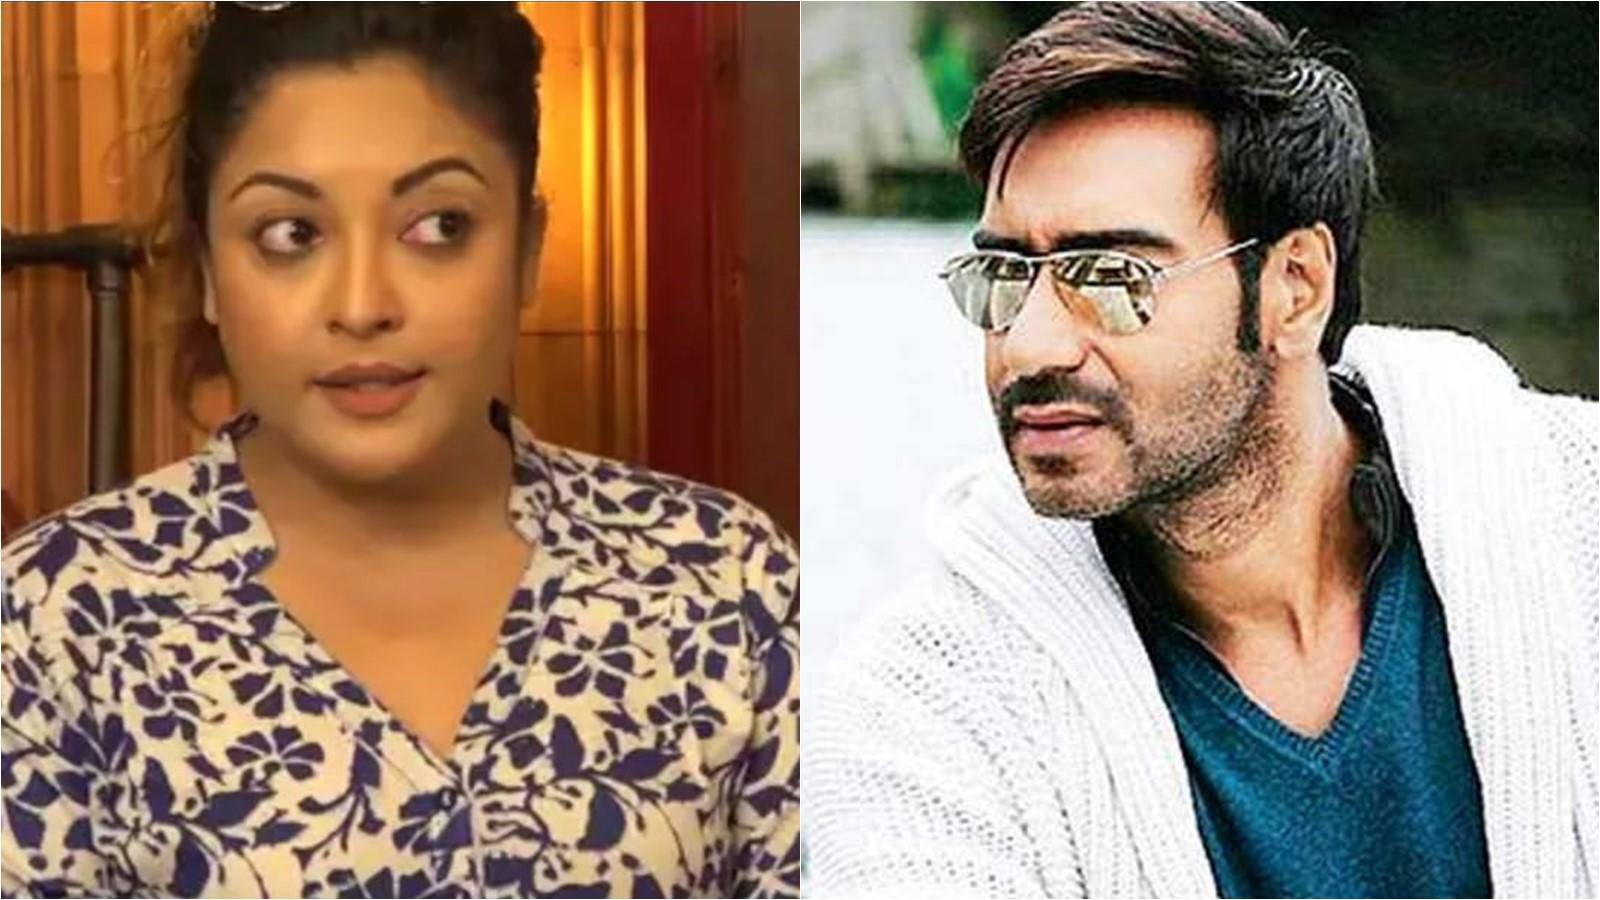 Ajay Devgn on Tanushree Dutta's allegations: Why am I being singled out as insensitive?